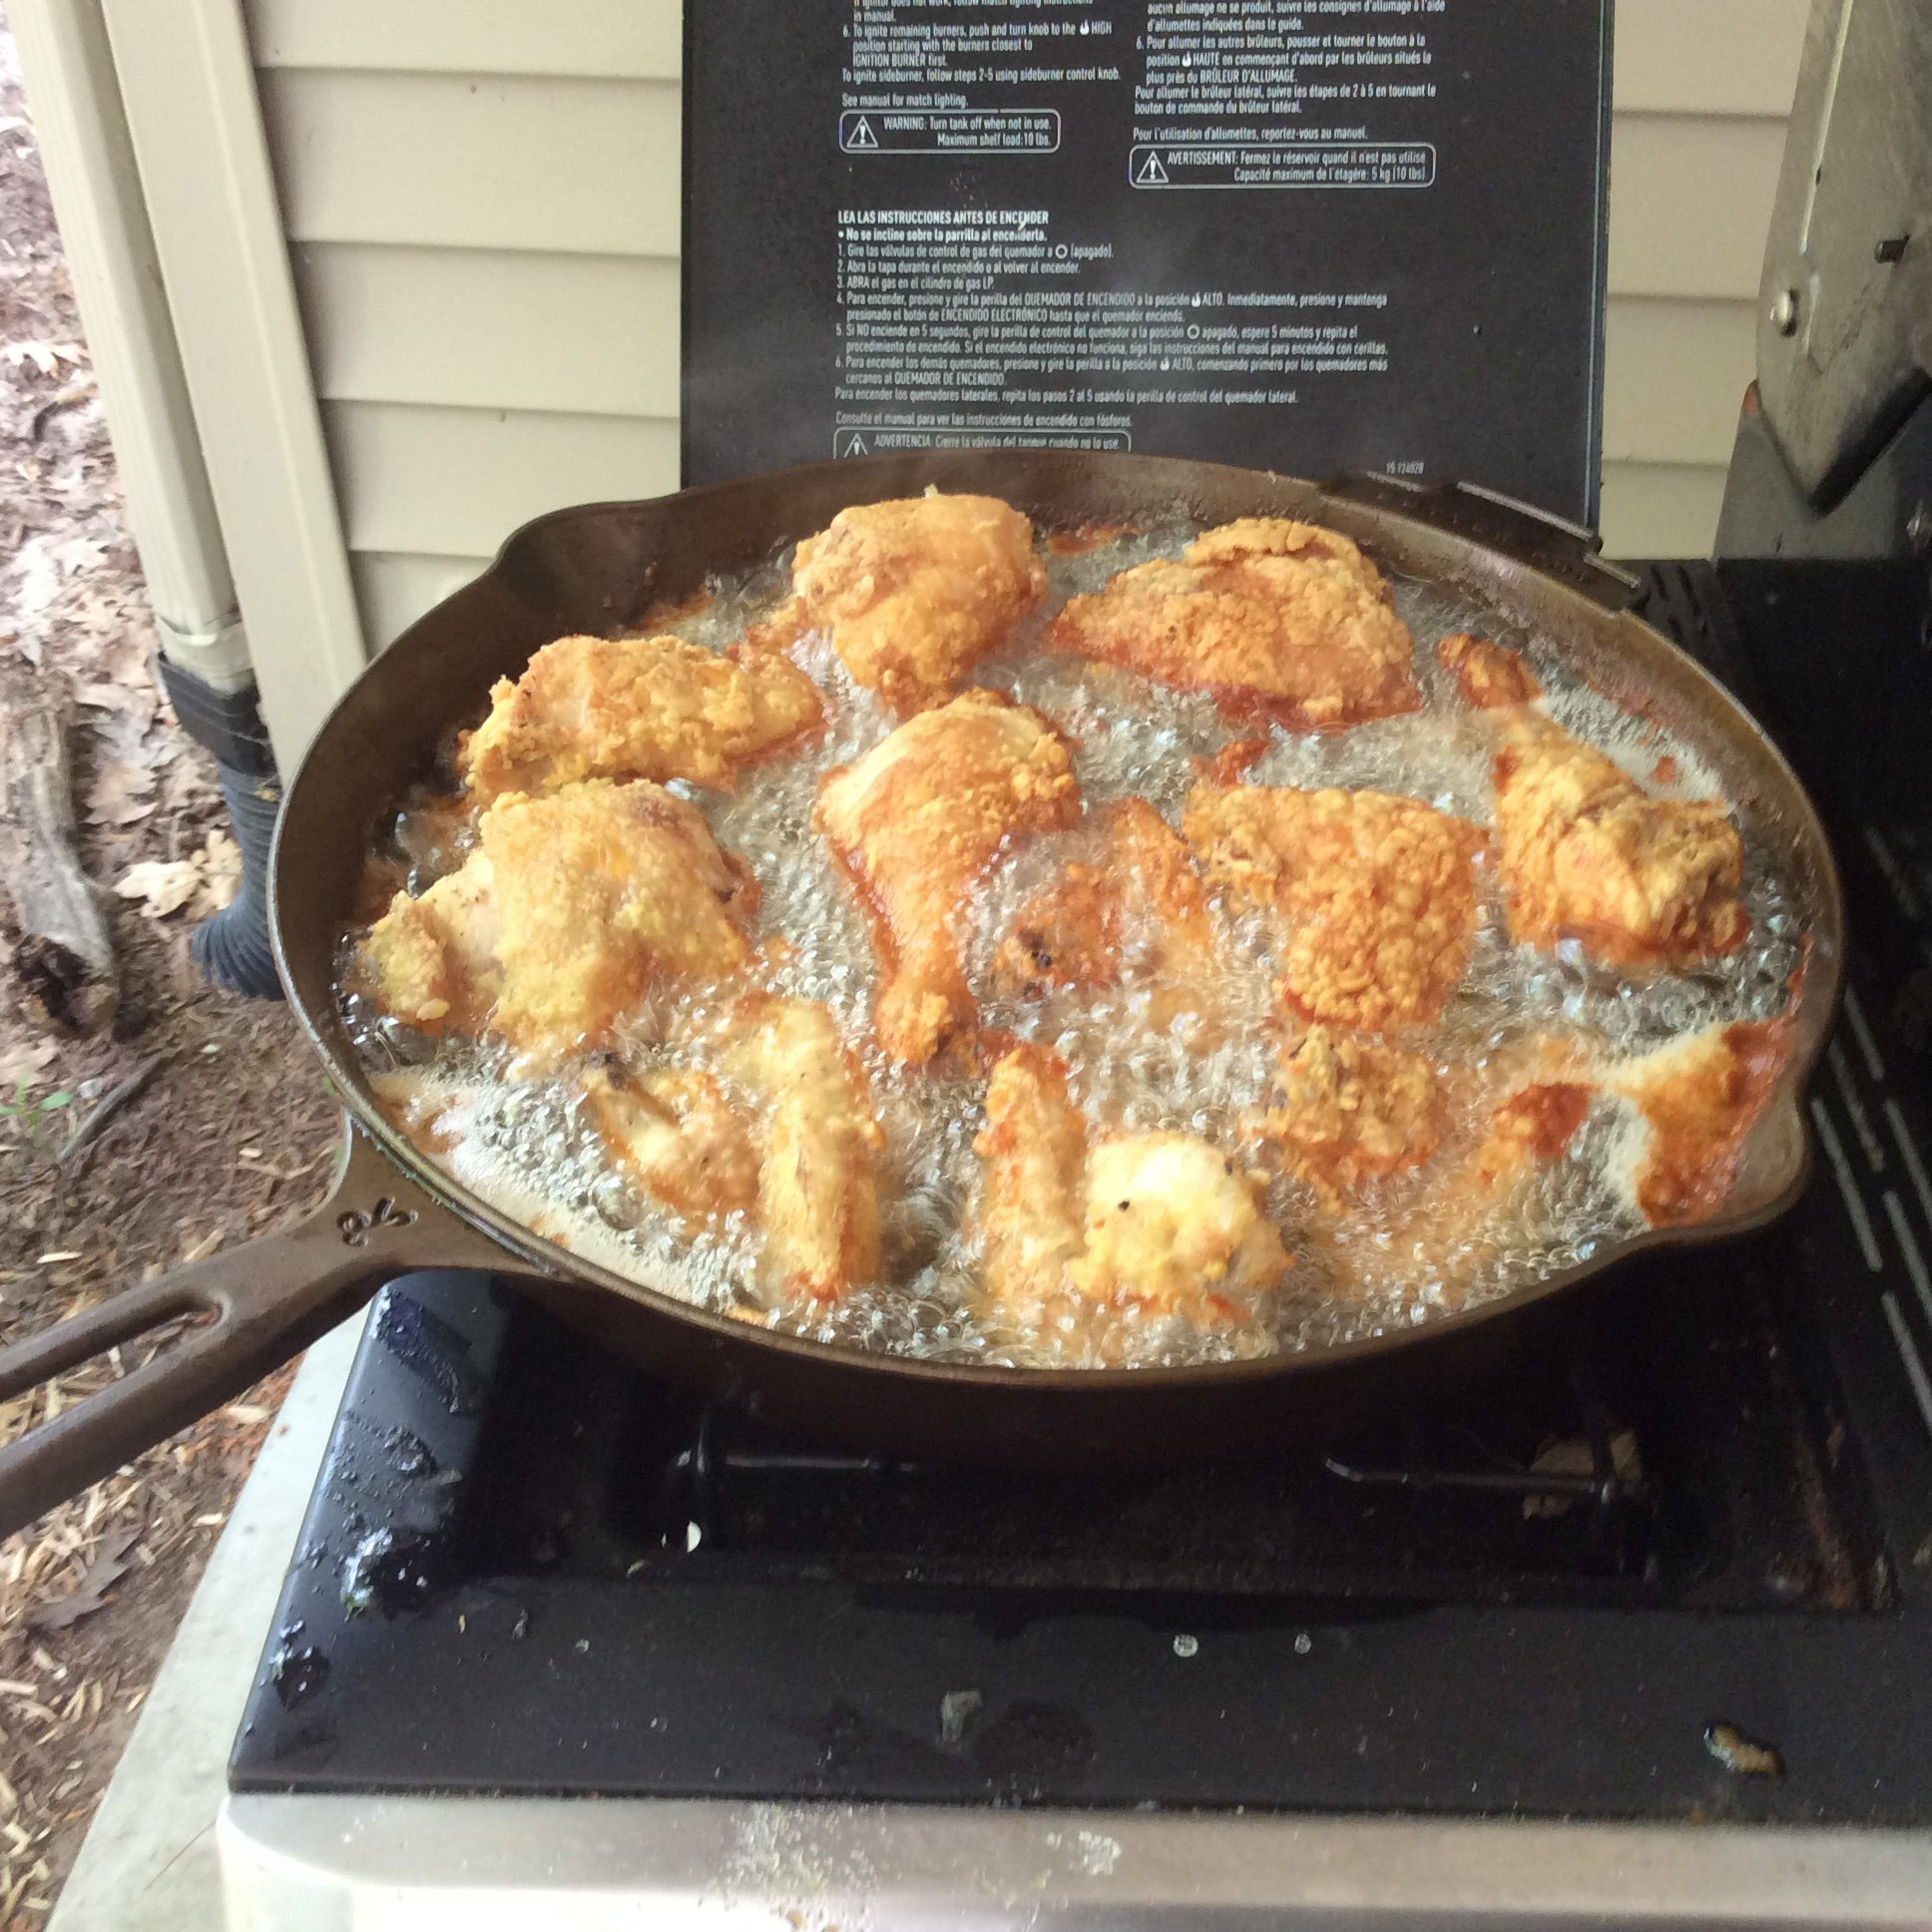 Previous Happening: Chicken fried in pork lard